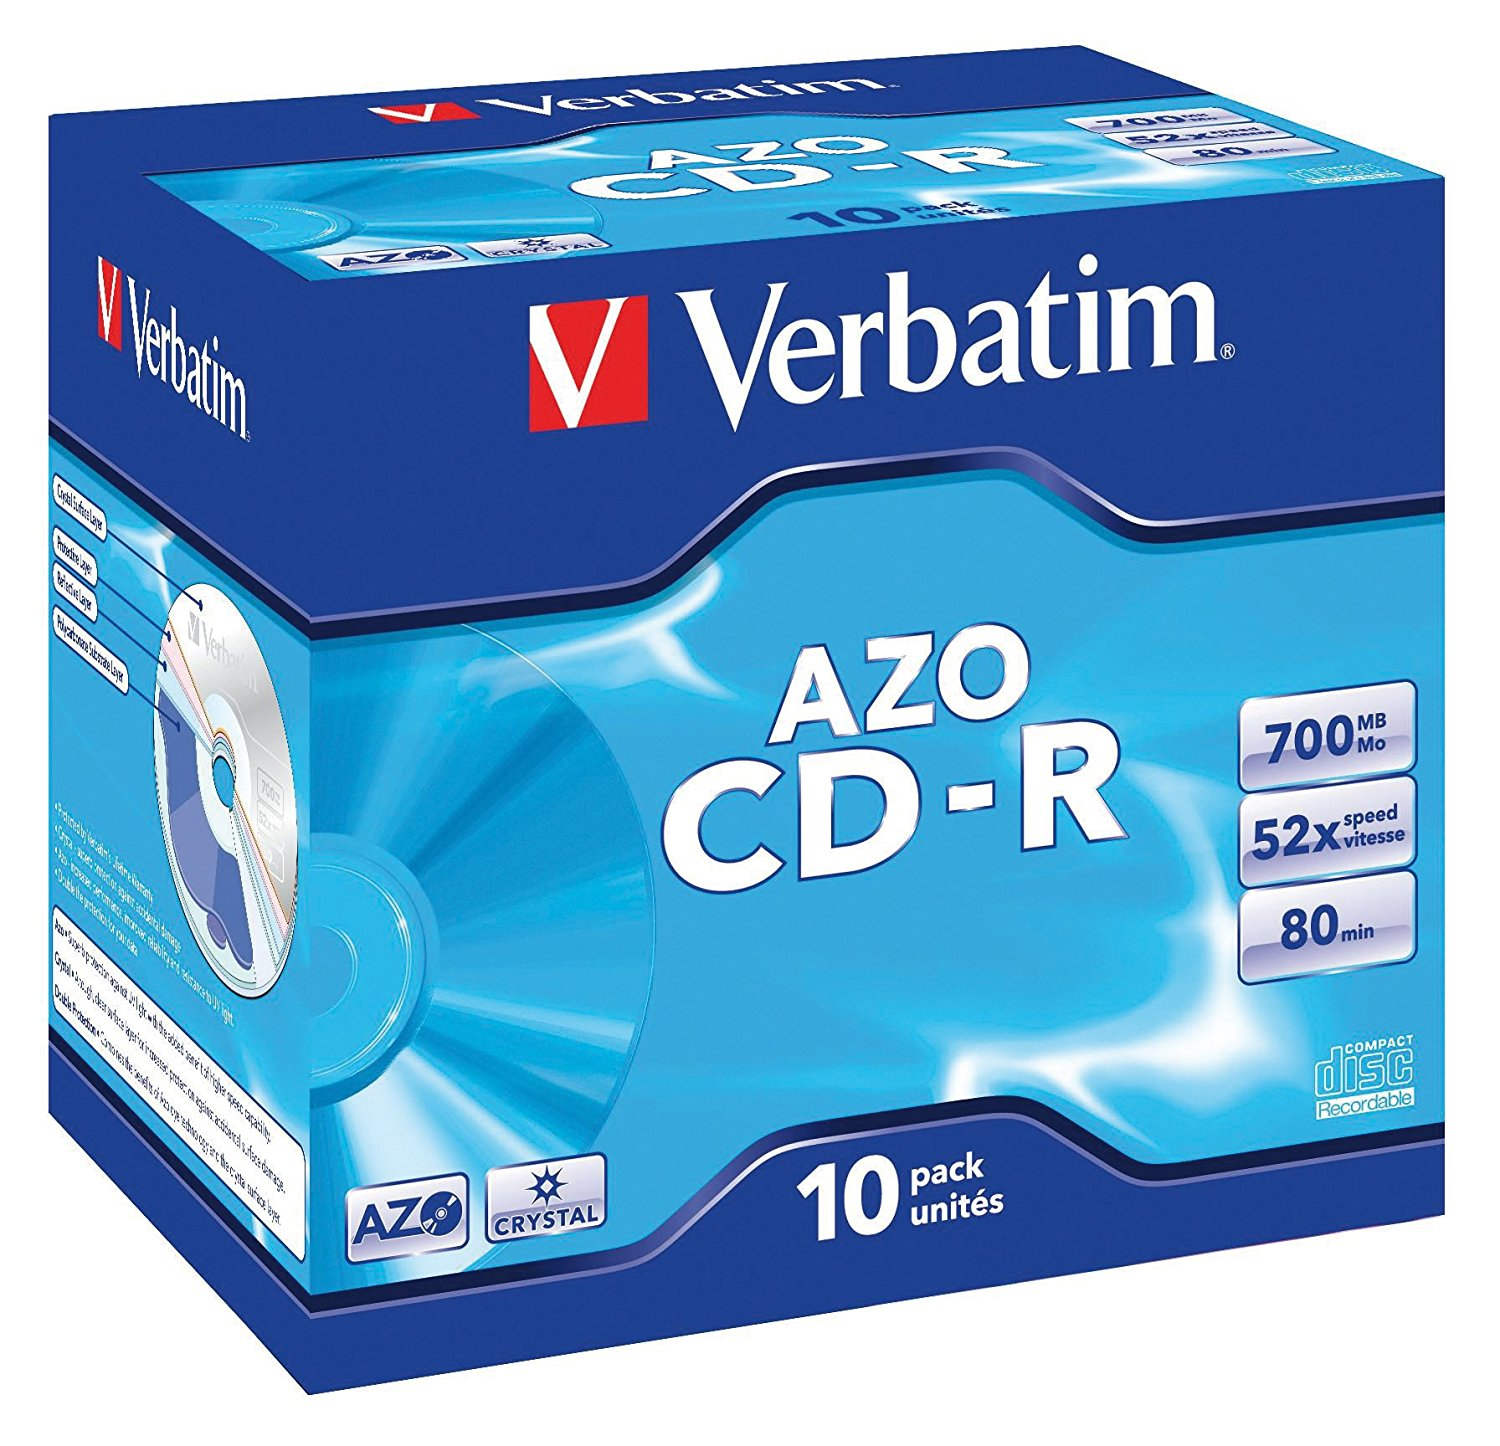 Verbatim CDR Crystal 700MB Box of 10